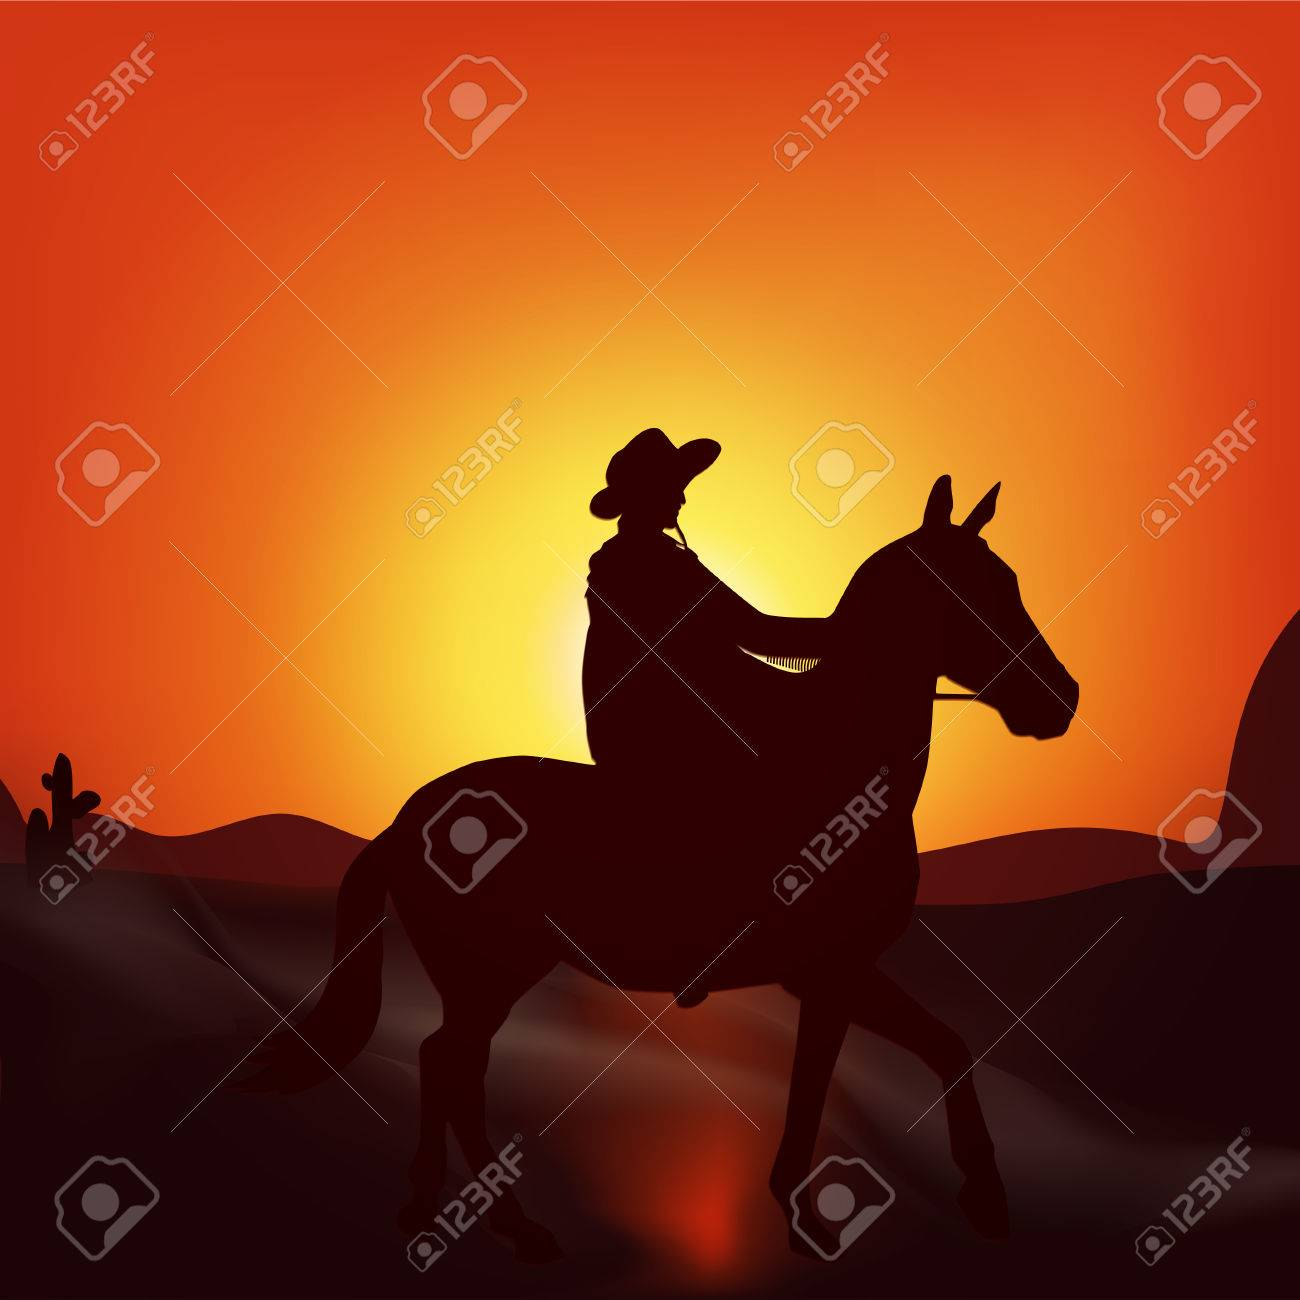 Cowboy On Sunset Background Stylish Vector Poster Wild West Royalty Free Cliparts Vectors And Stock Illustration Image 69520921